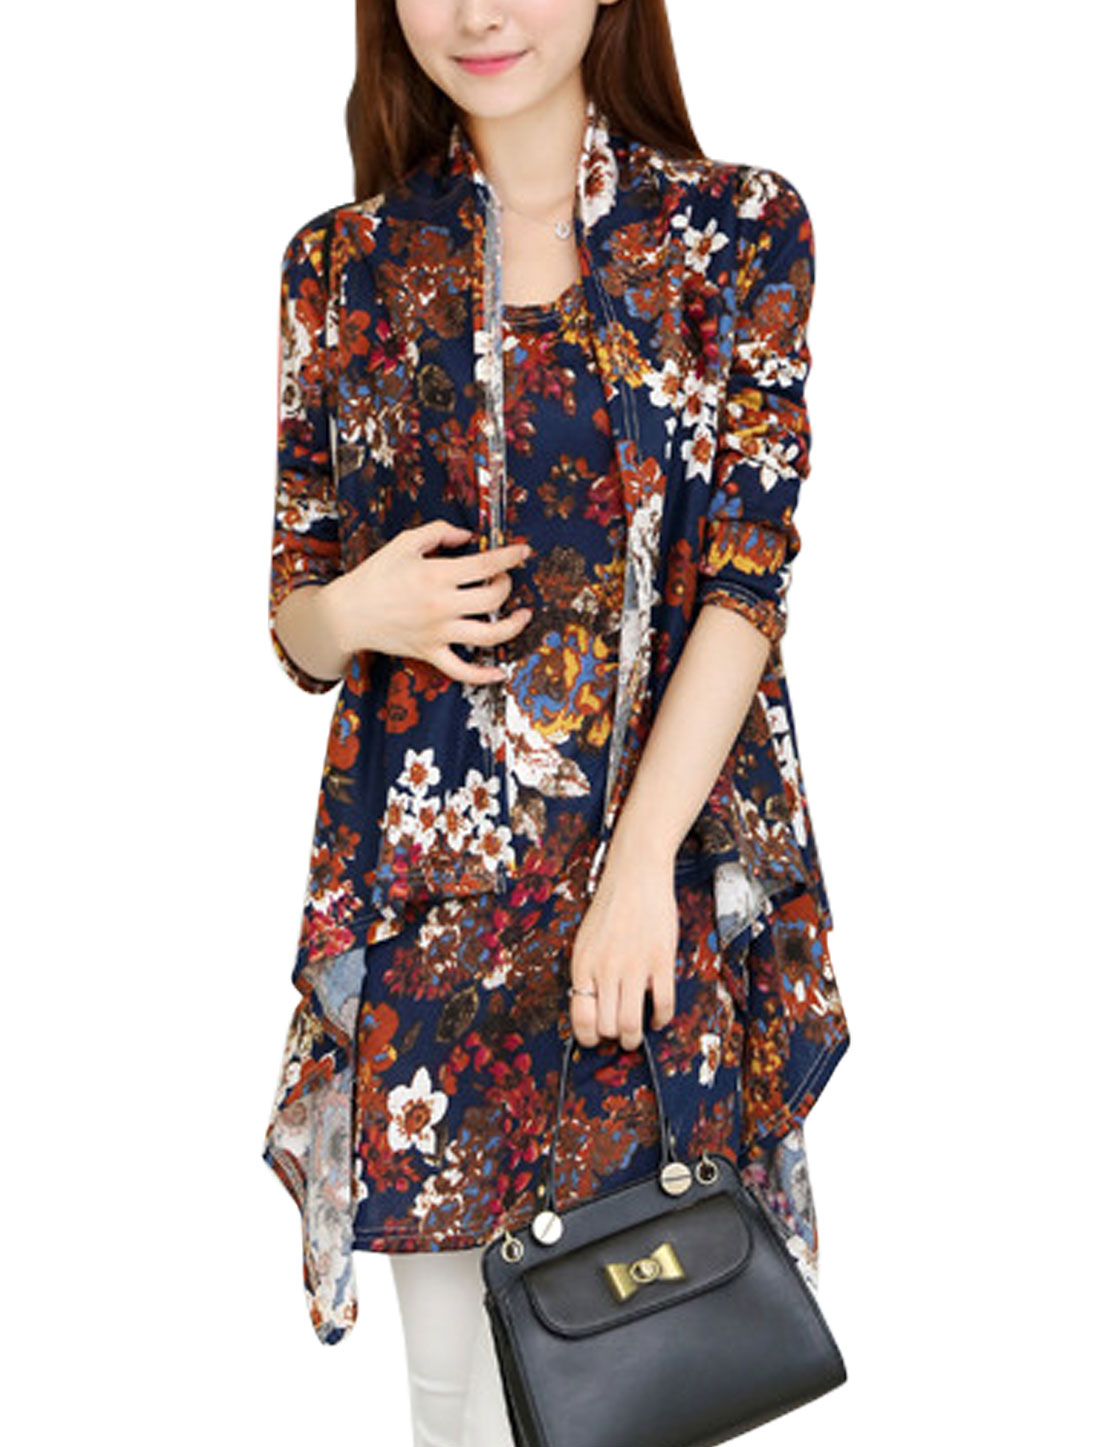 Ladies Navy Blue Sleeveless Floral Prints Front Opening Irregular Hem Knit Vest XS